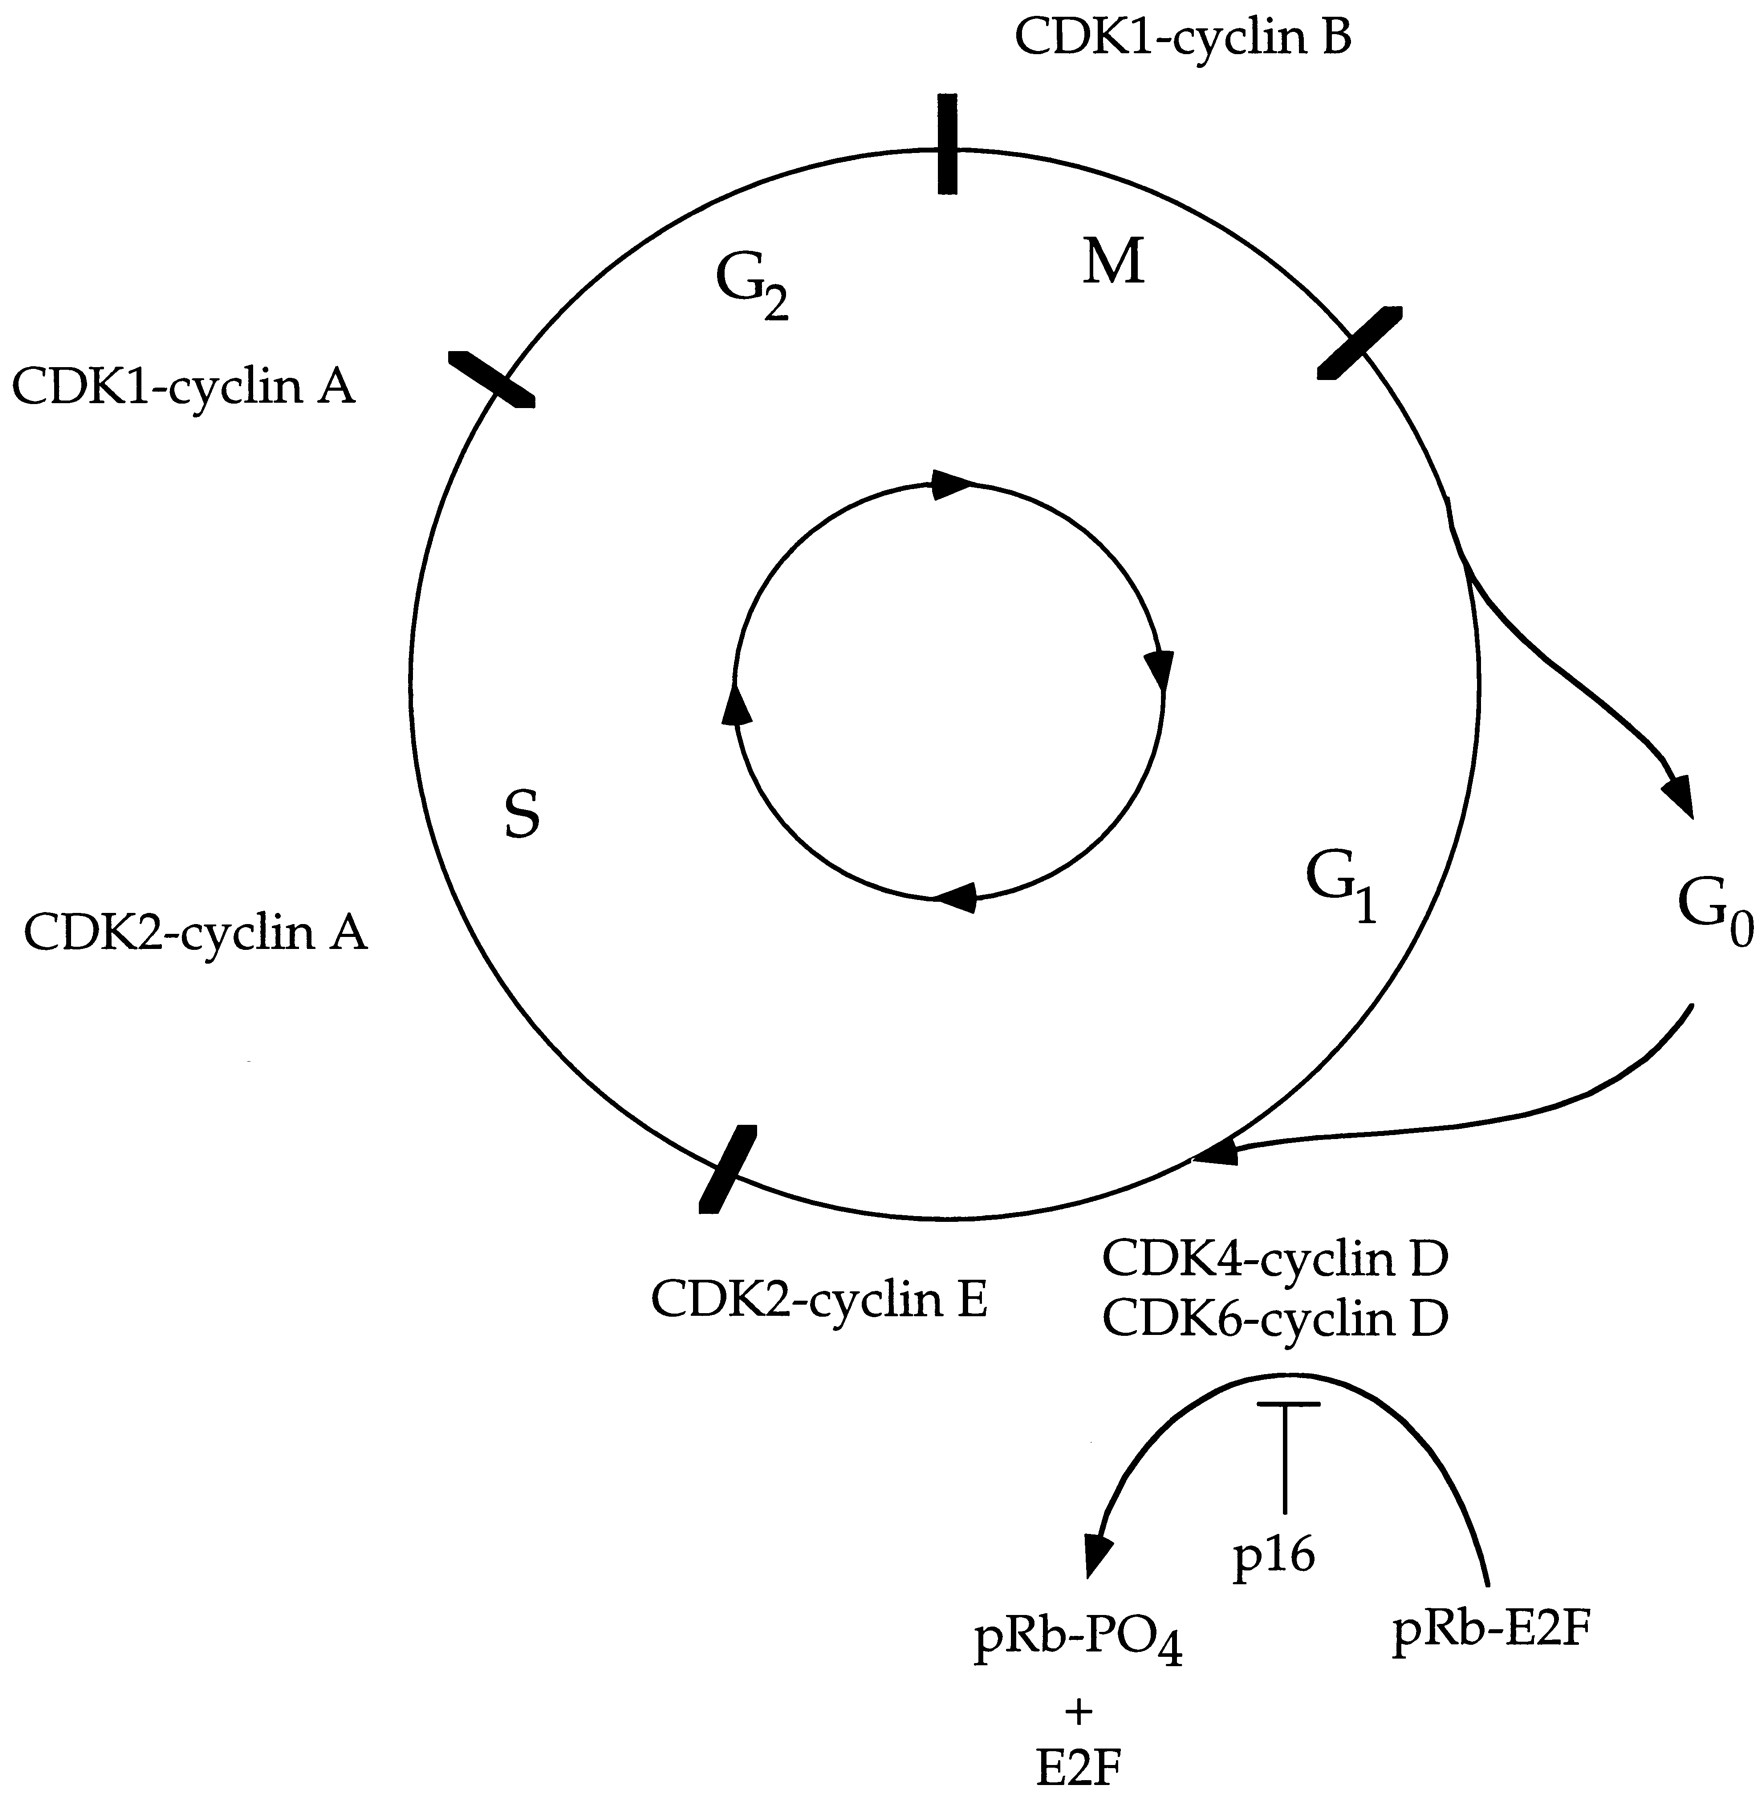 Diagram Of Cell Cycle The Cell Cycle And Cancer Pnas